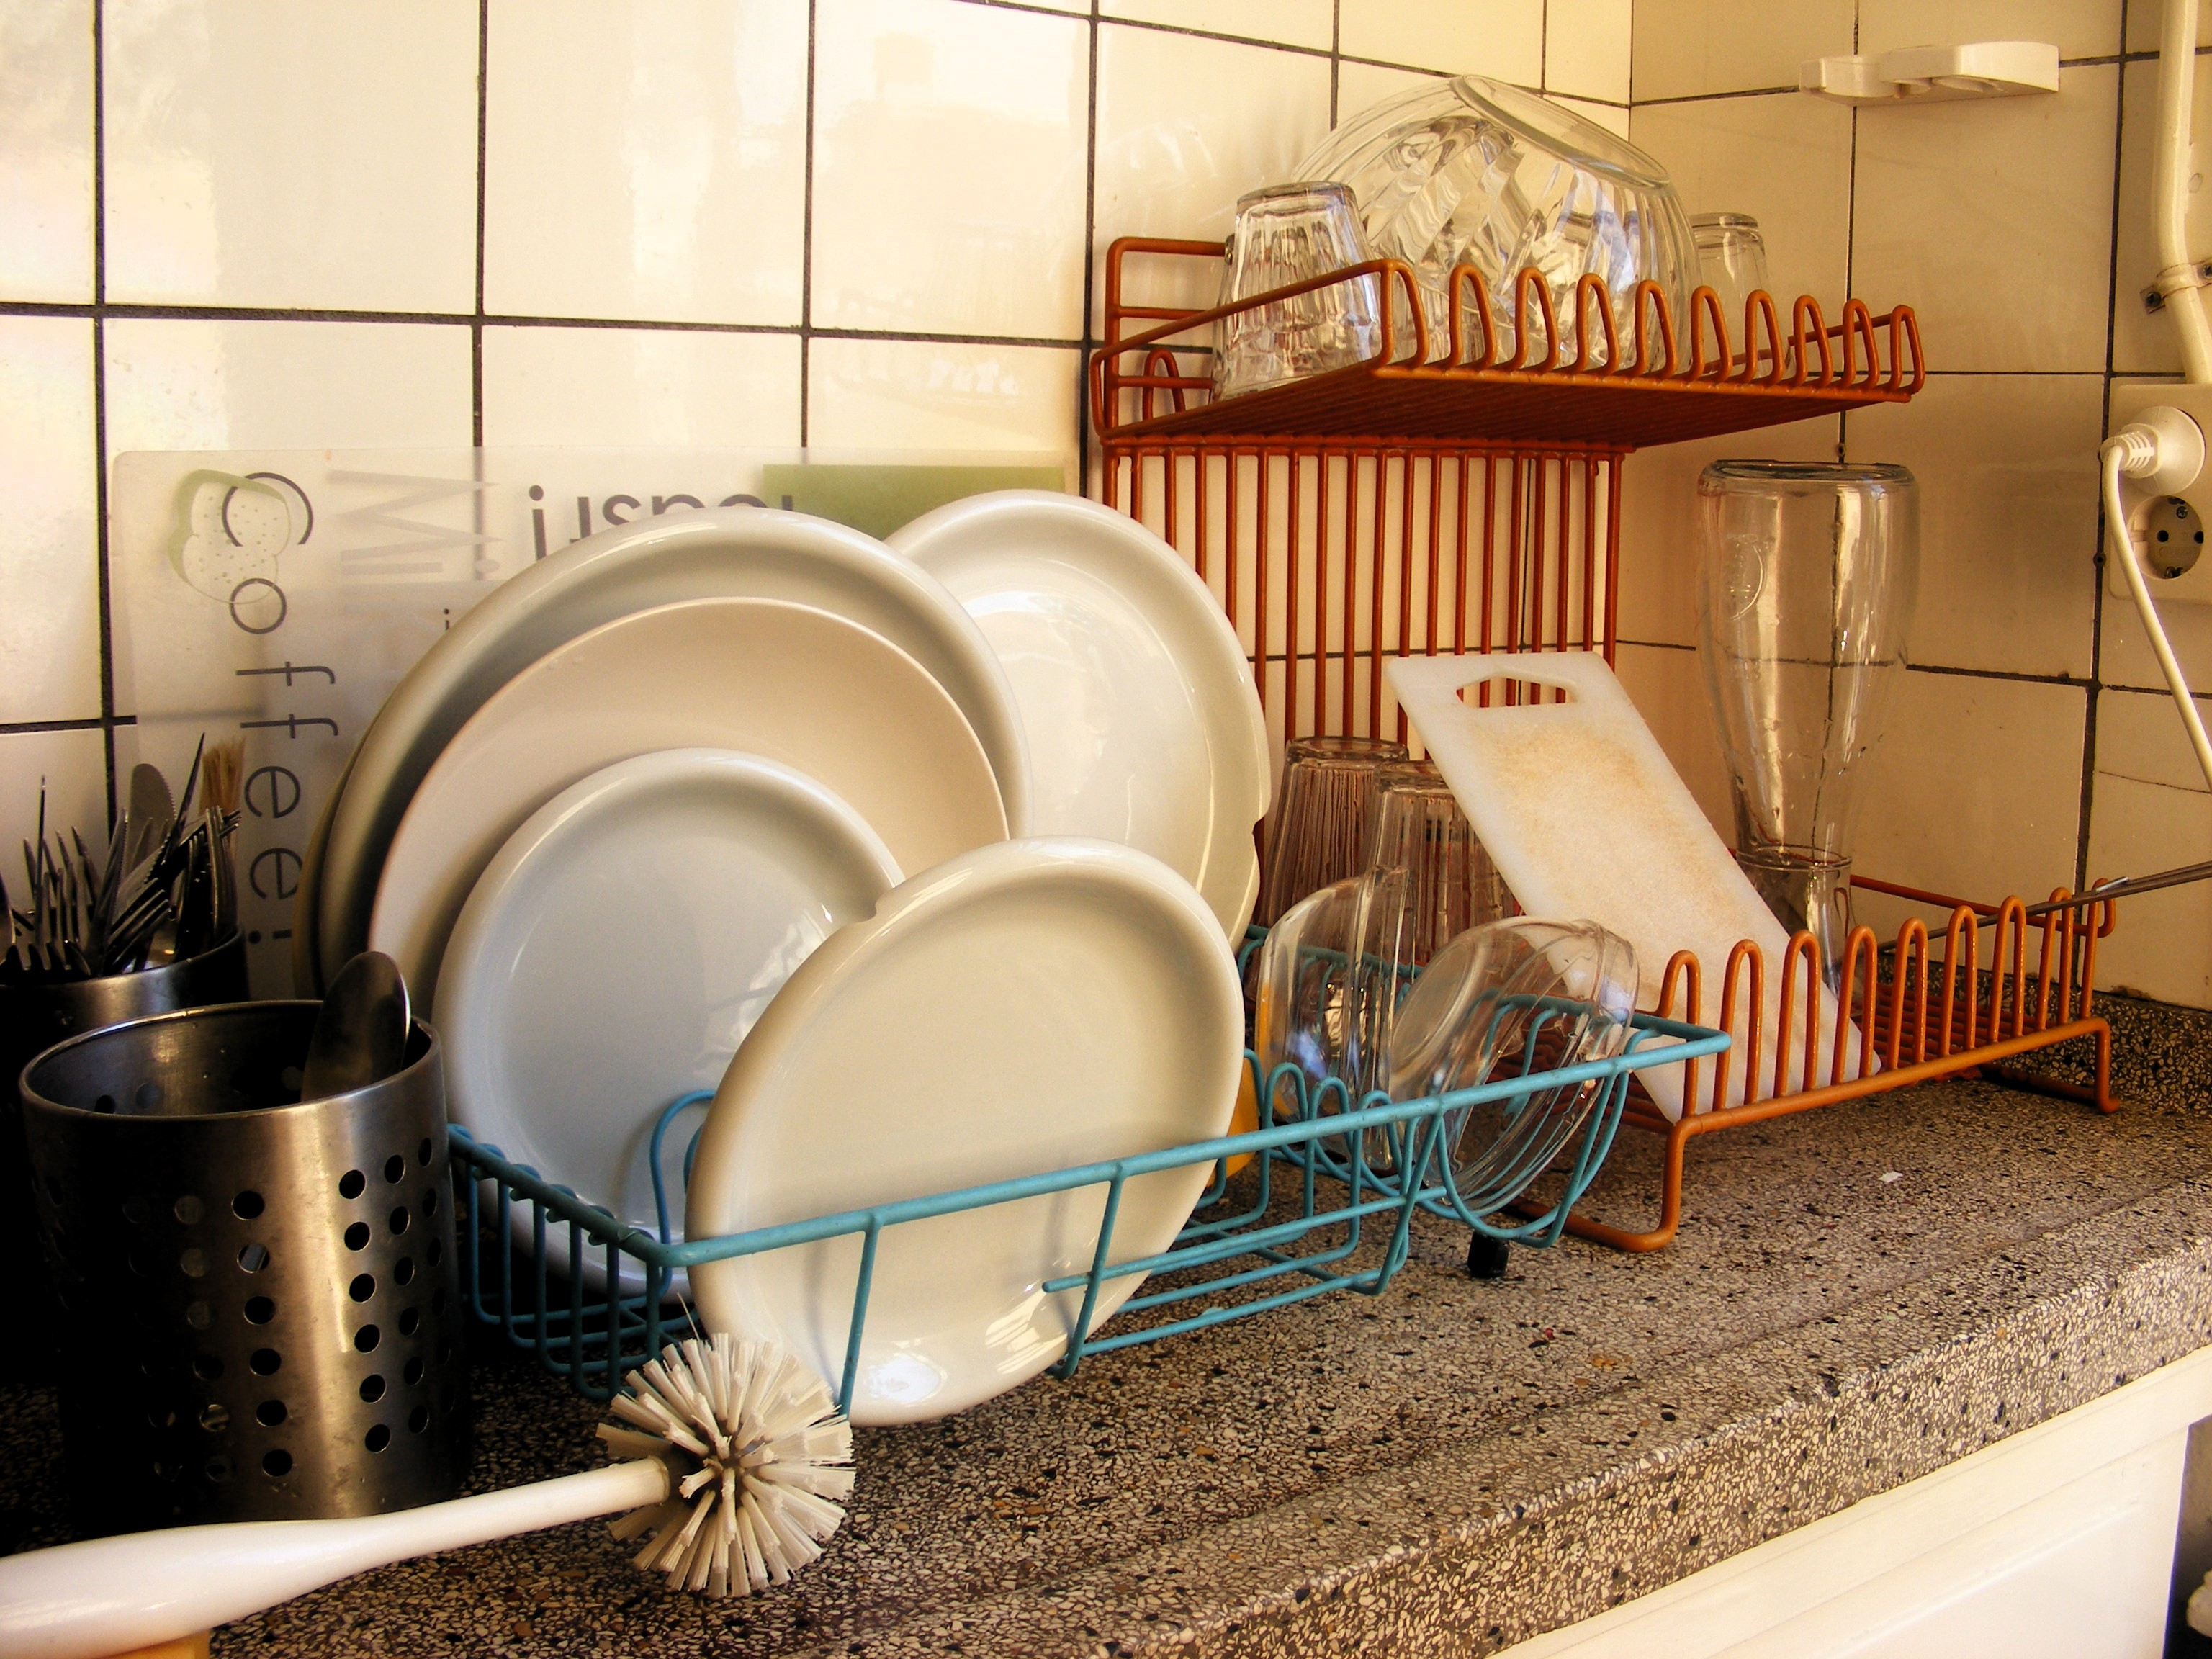 file:dishes in a dutch kitchen - wikimedia commons